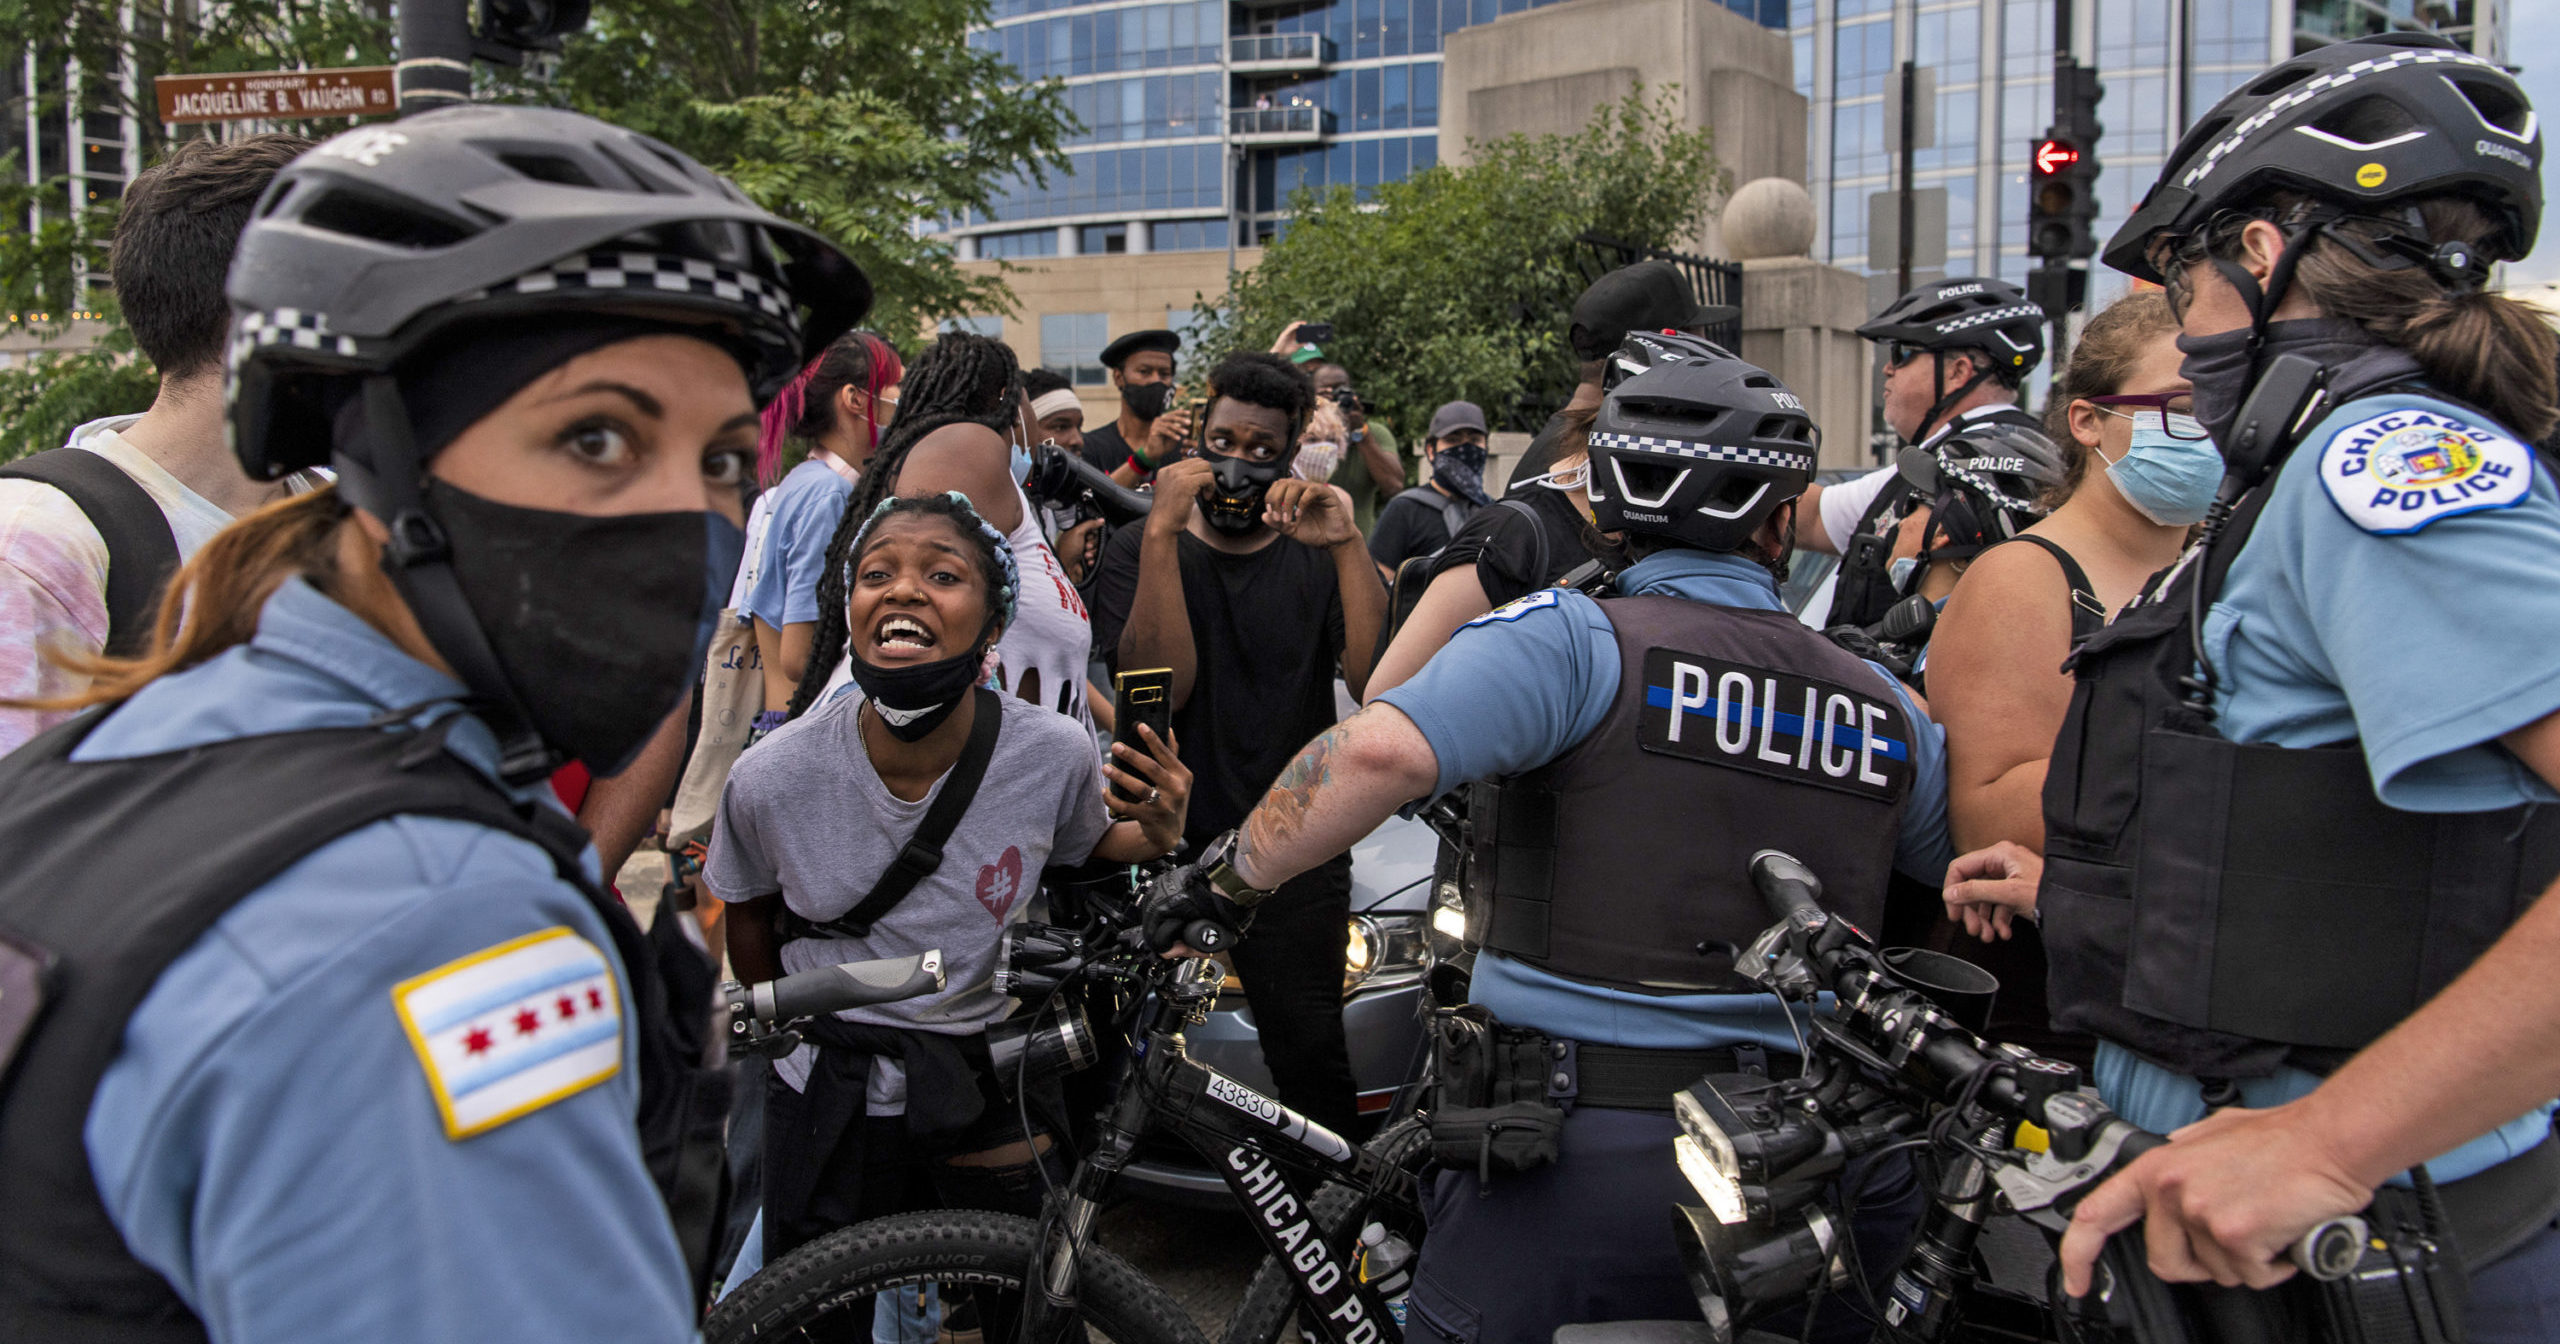 Chicago police and protesters crowd around a vehicle on July 20, 2020, in Chicago.